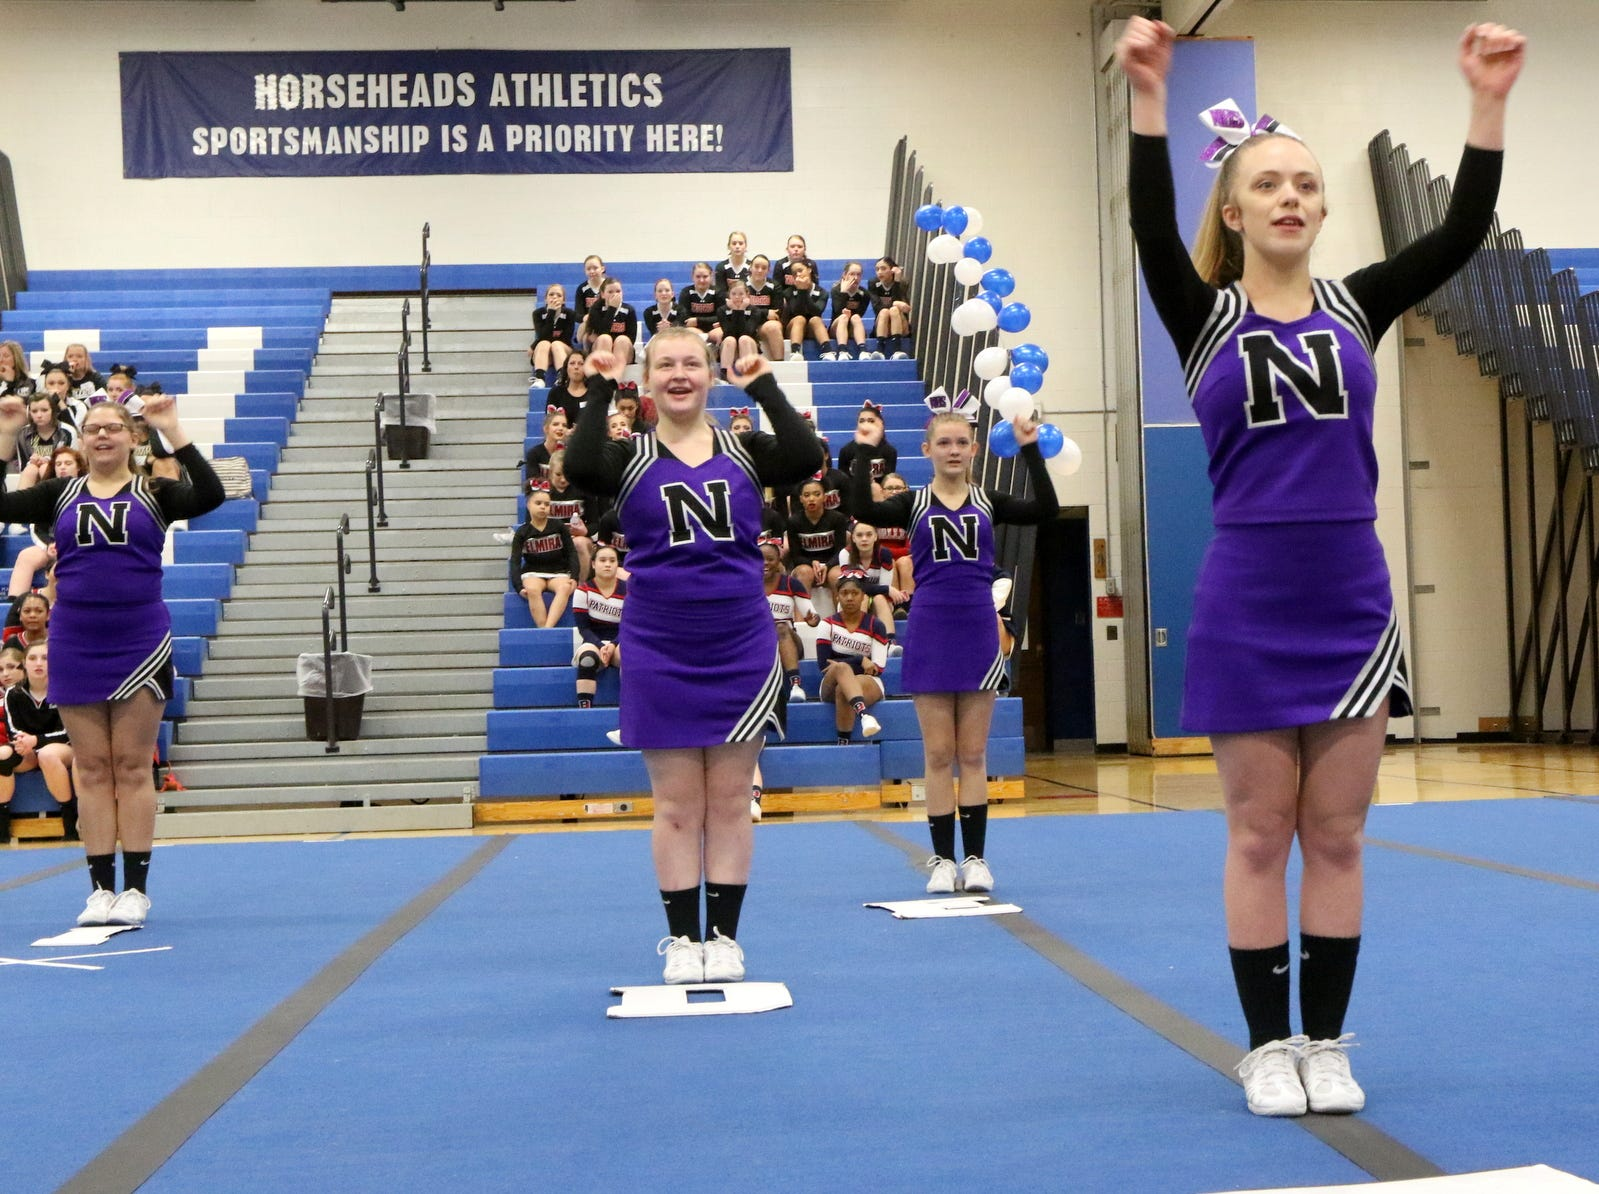 Norwich varsity cheerleaders compete at the STAC Winter Cheer Championships on Feb. 16, 2019 at Horseheads Middle School.